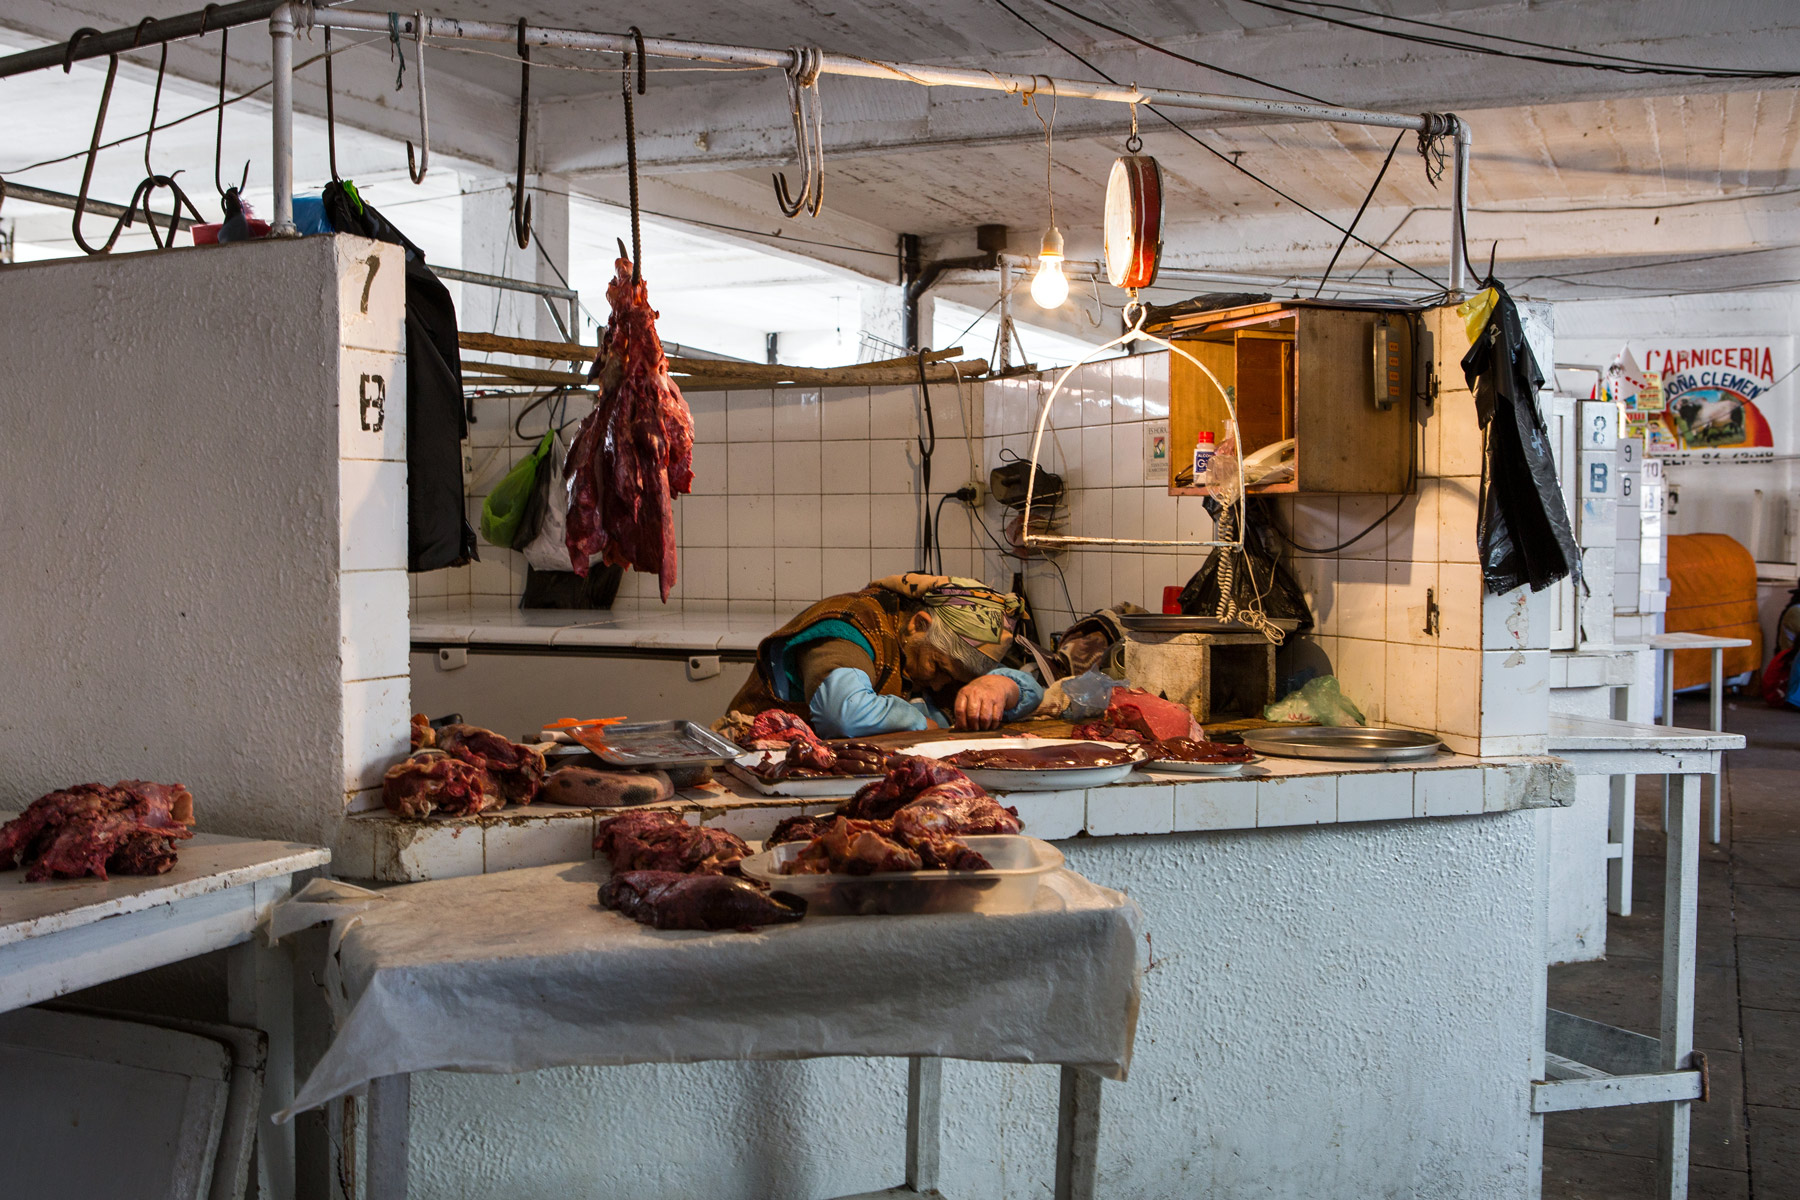 A woman asleep in a market stall selling meat in Bolivia